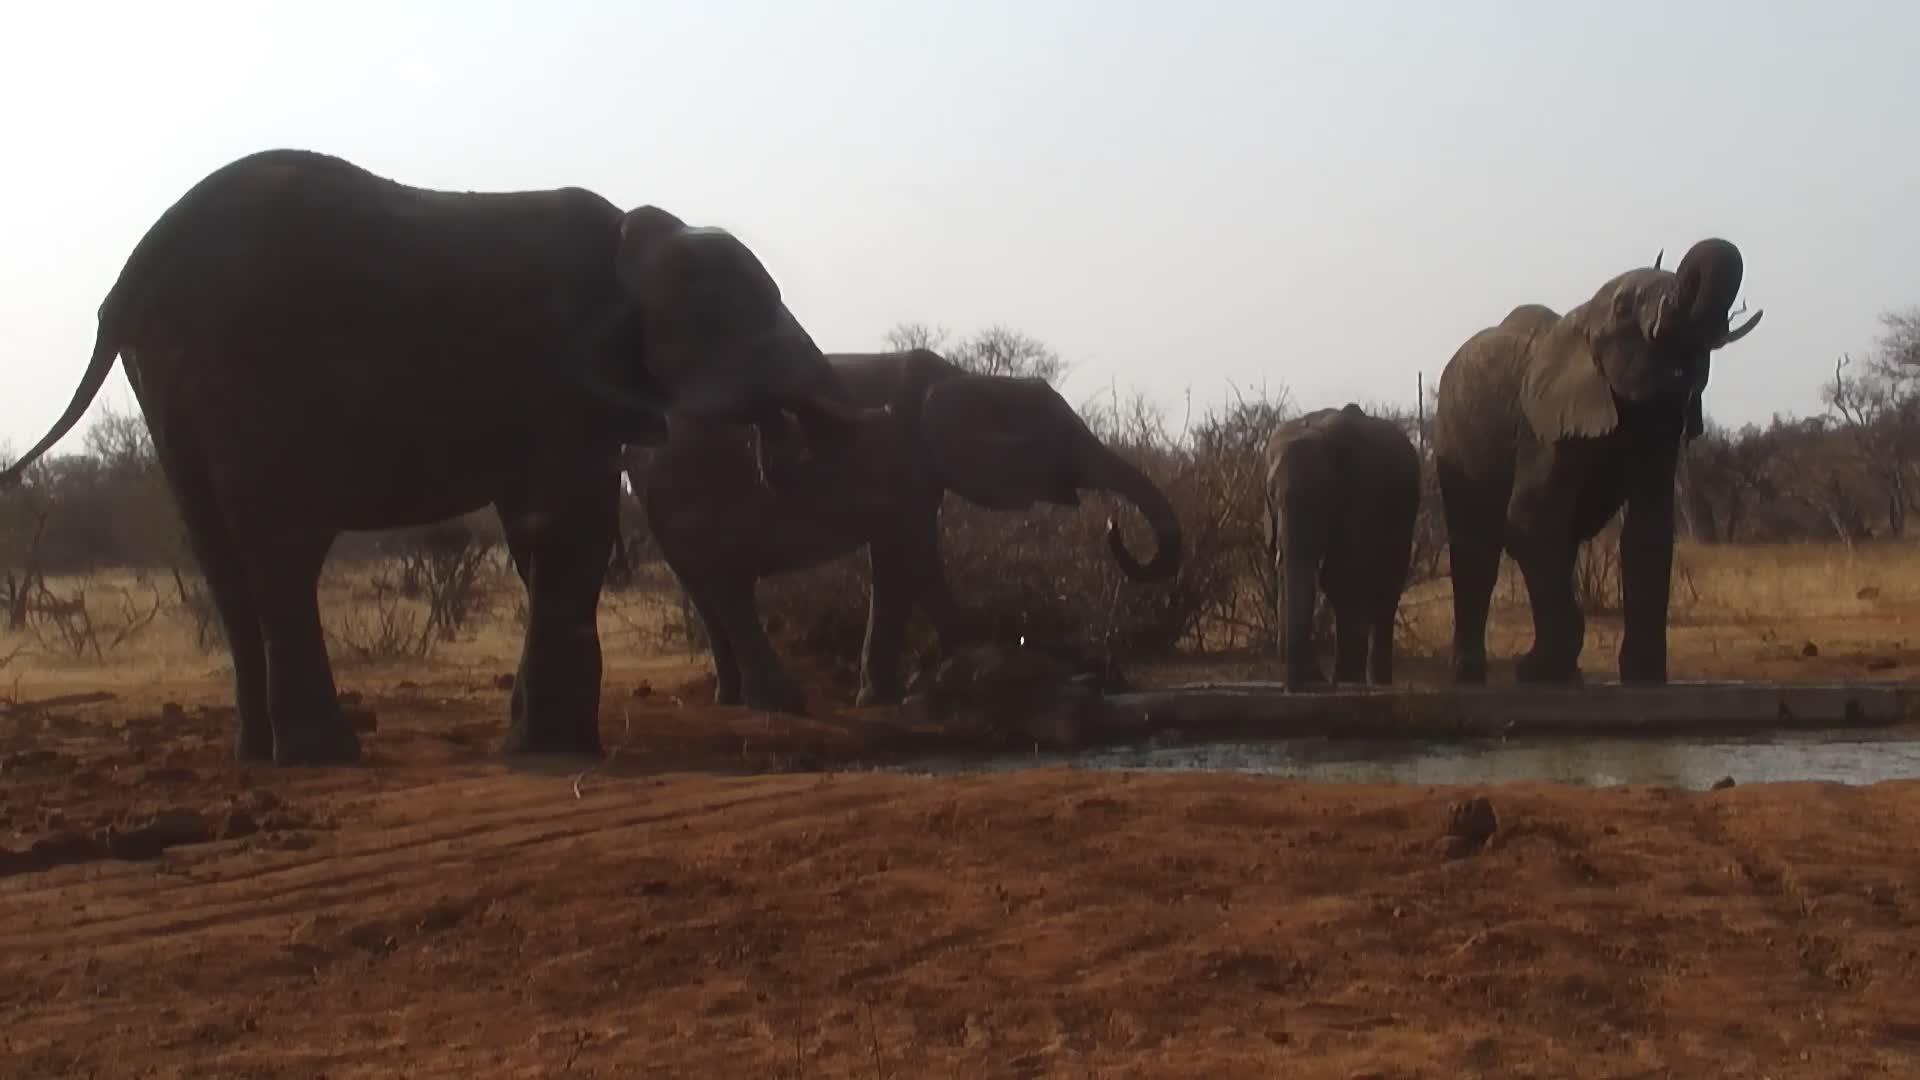 VIDEO: Elephant family in a rush